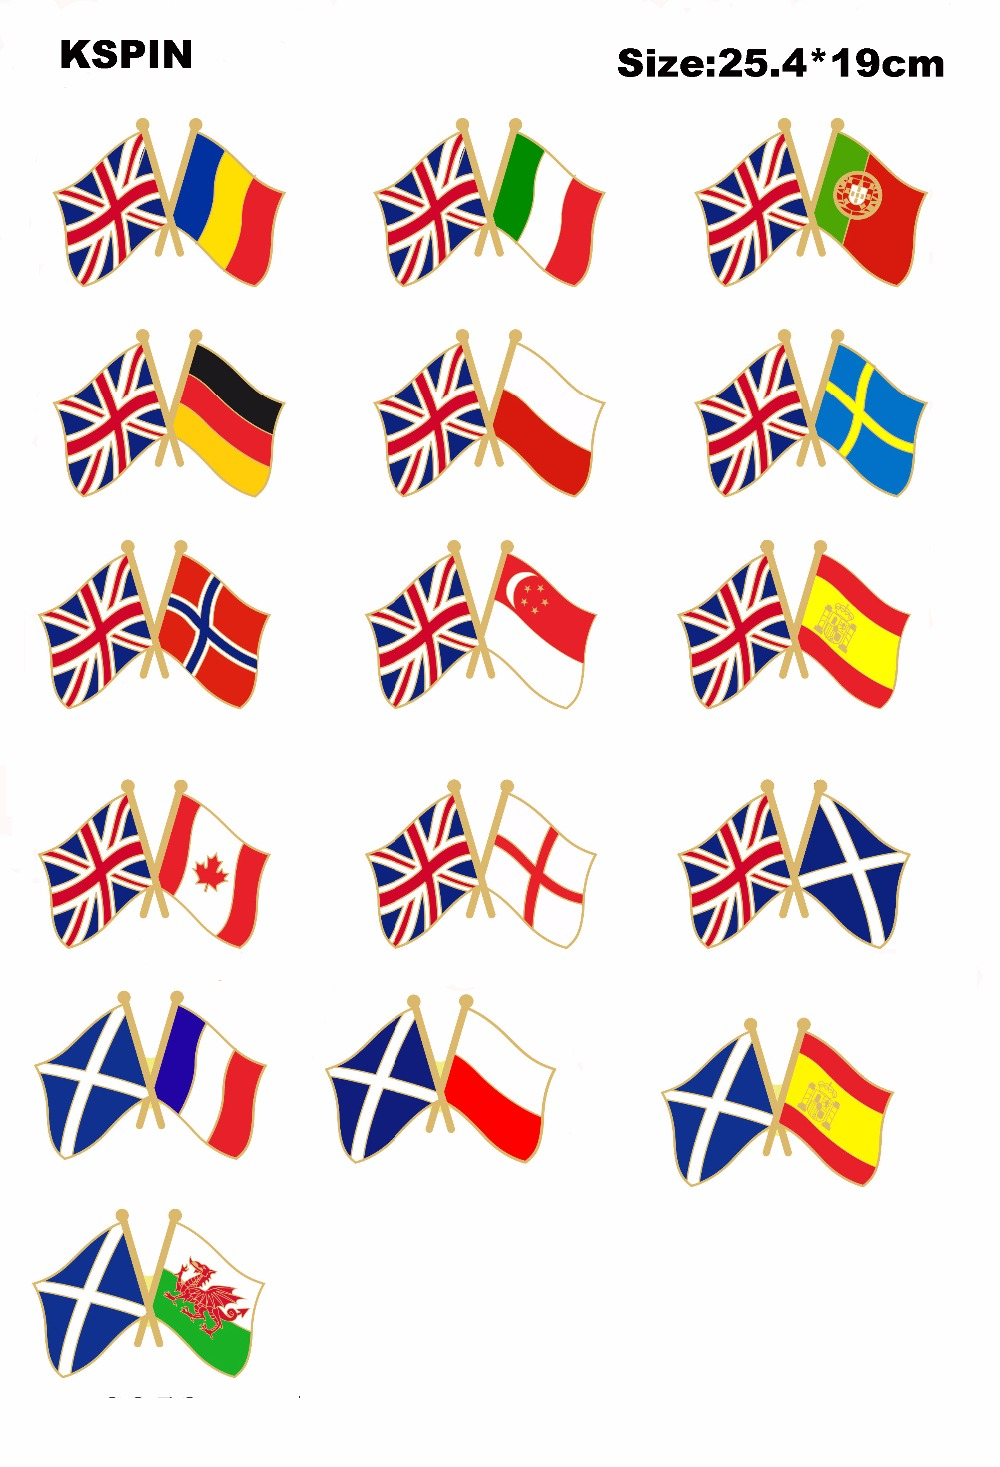 Uk Friendship Flag Badge Lapel Pin Pin 100pcs A Lot Rich In Poetic And Pictorial Splendor Badges